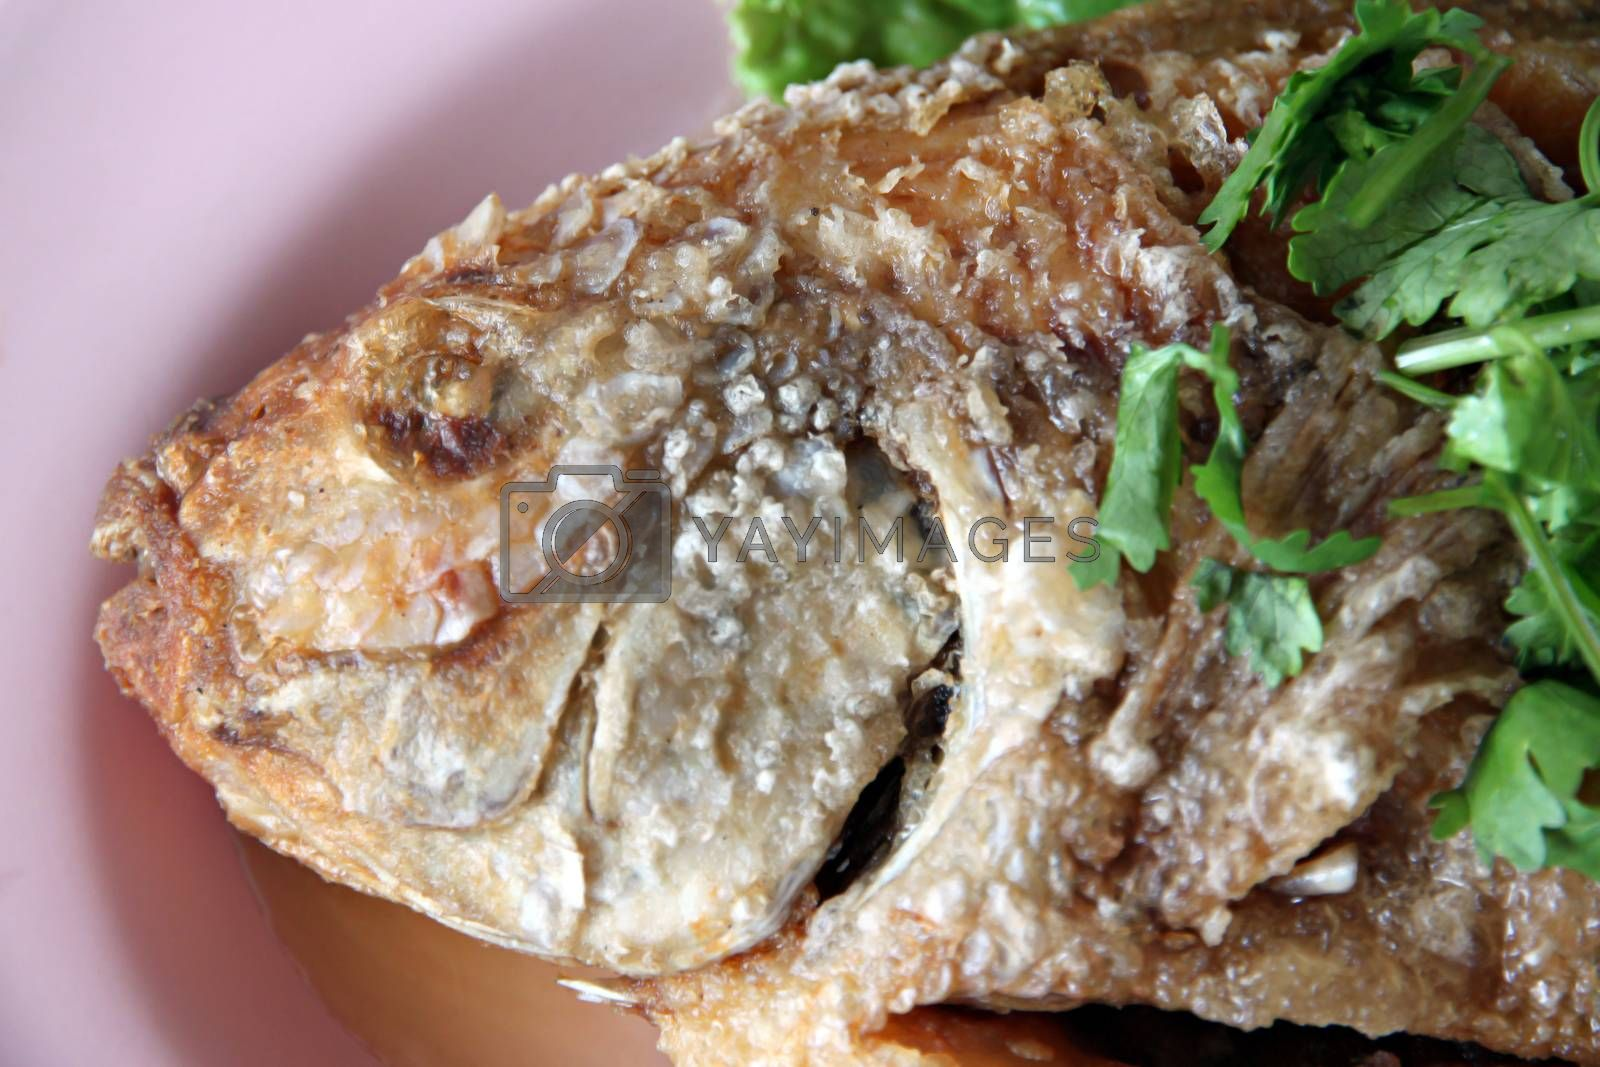 The Thai food of Fried fish and cilantro in the dish.